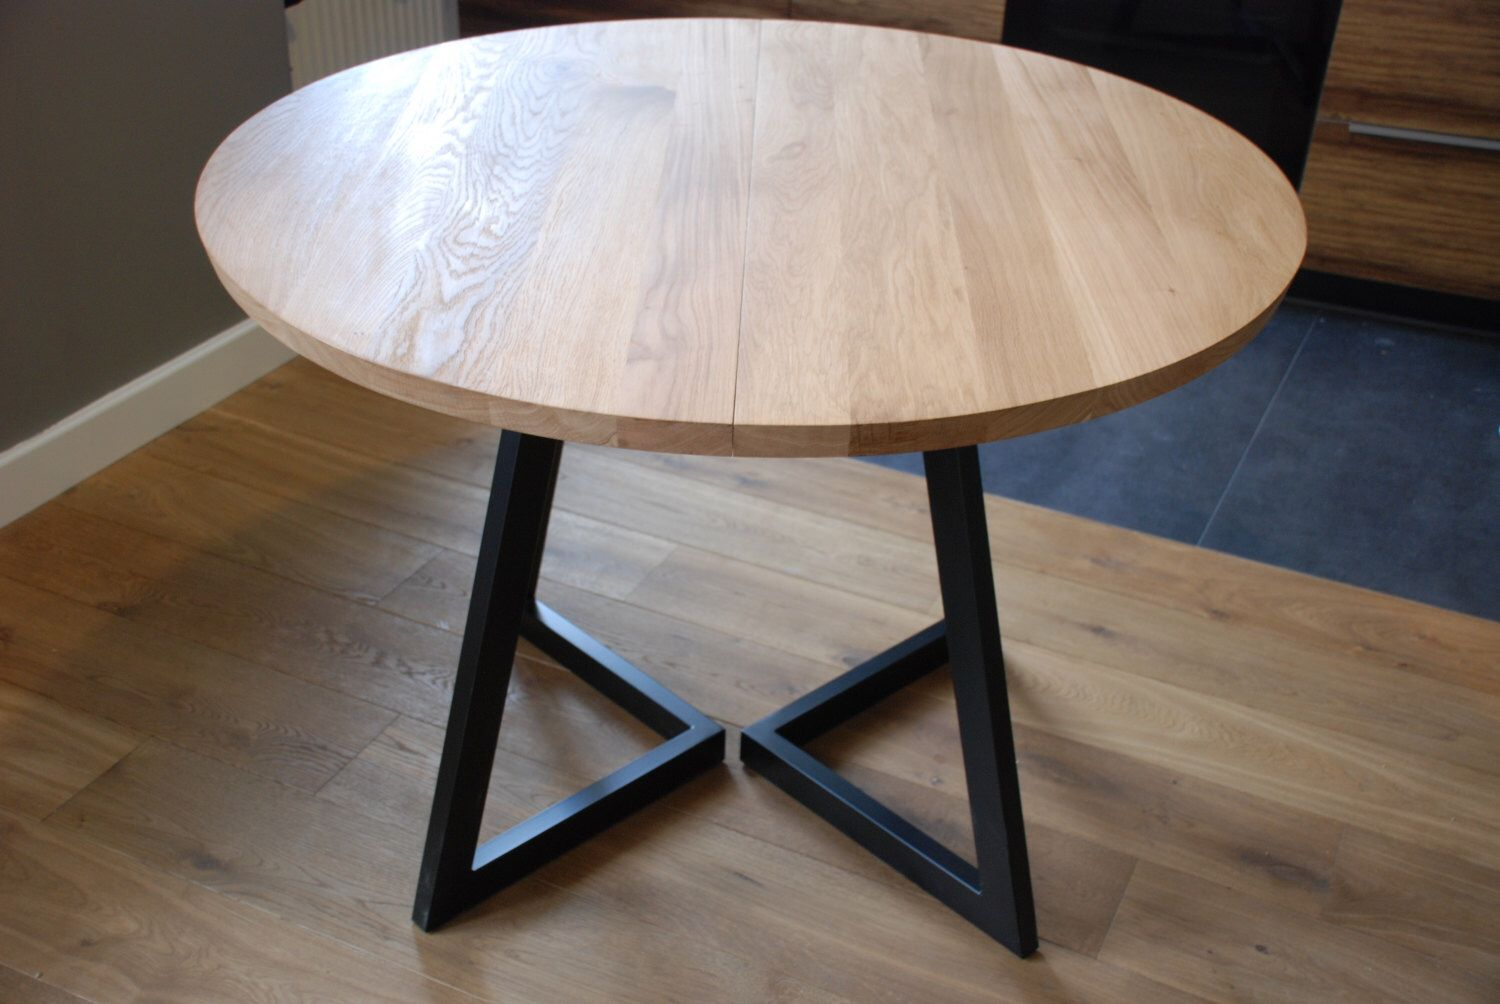 Extendable Round Table Modern Design Steel And Timber Handmade